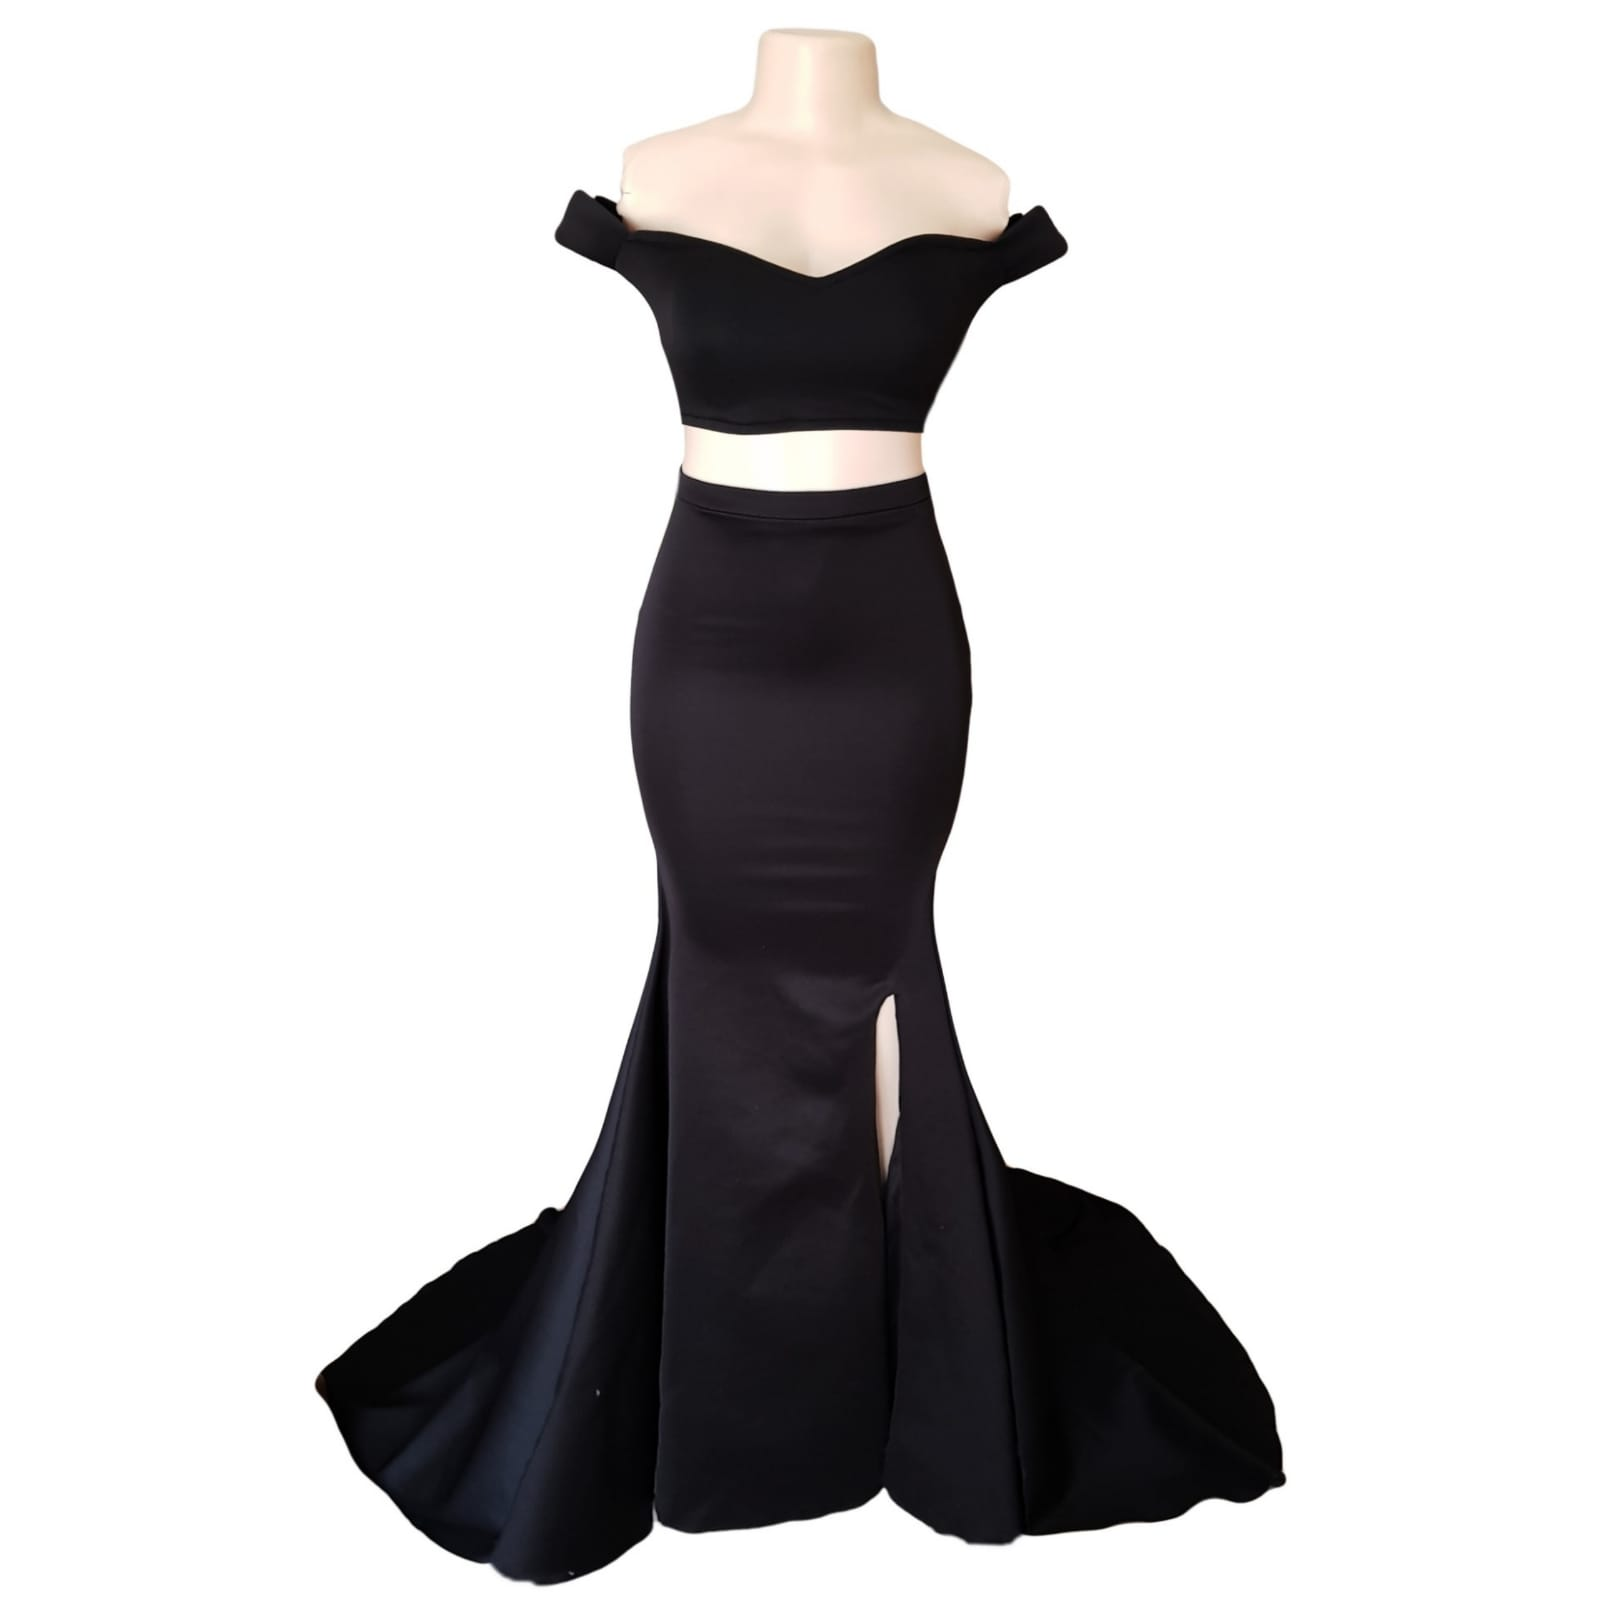 2 piece black off shoulder matric dance dress with a crop top 6 2 piece black off shoulder matric dance dress with a crop top. Lace-up back. Long skirt with knee length slit and a train.